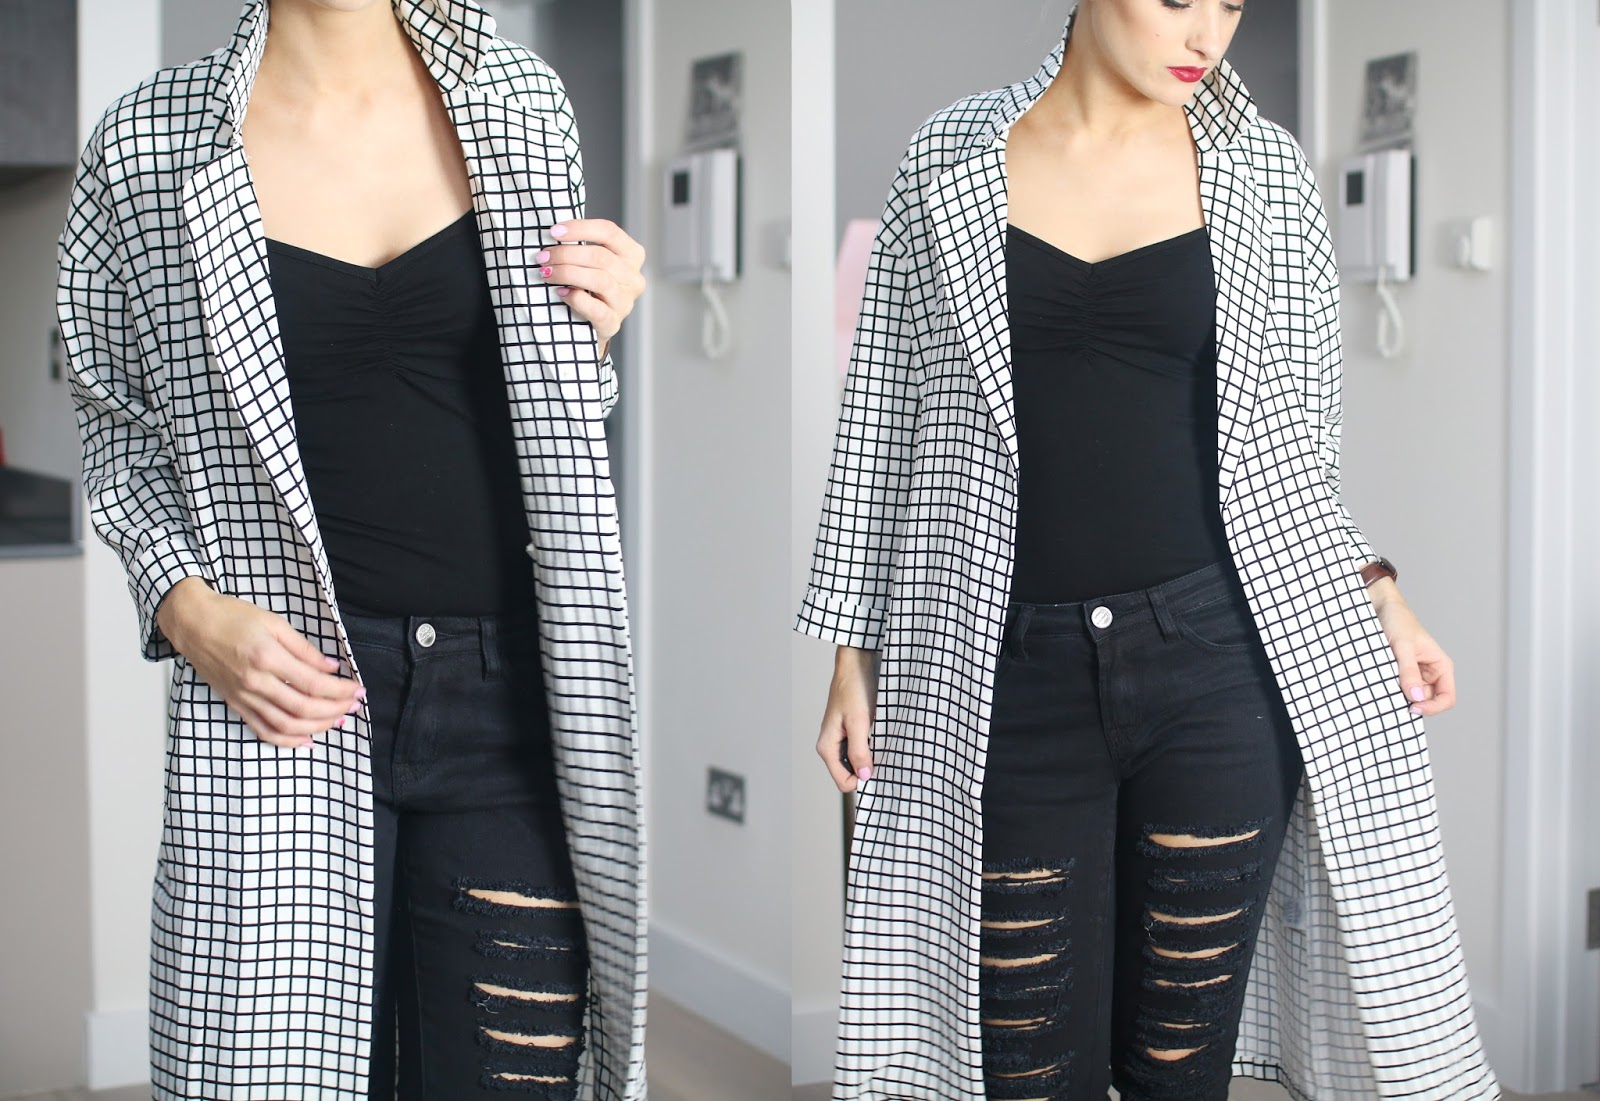 Pairing Checkerboard Prints and Ripped Denim